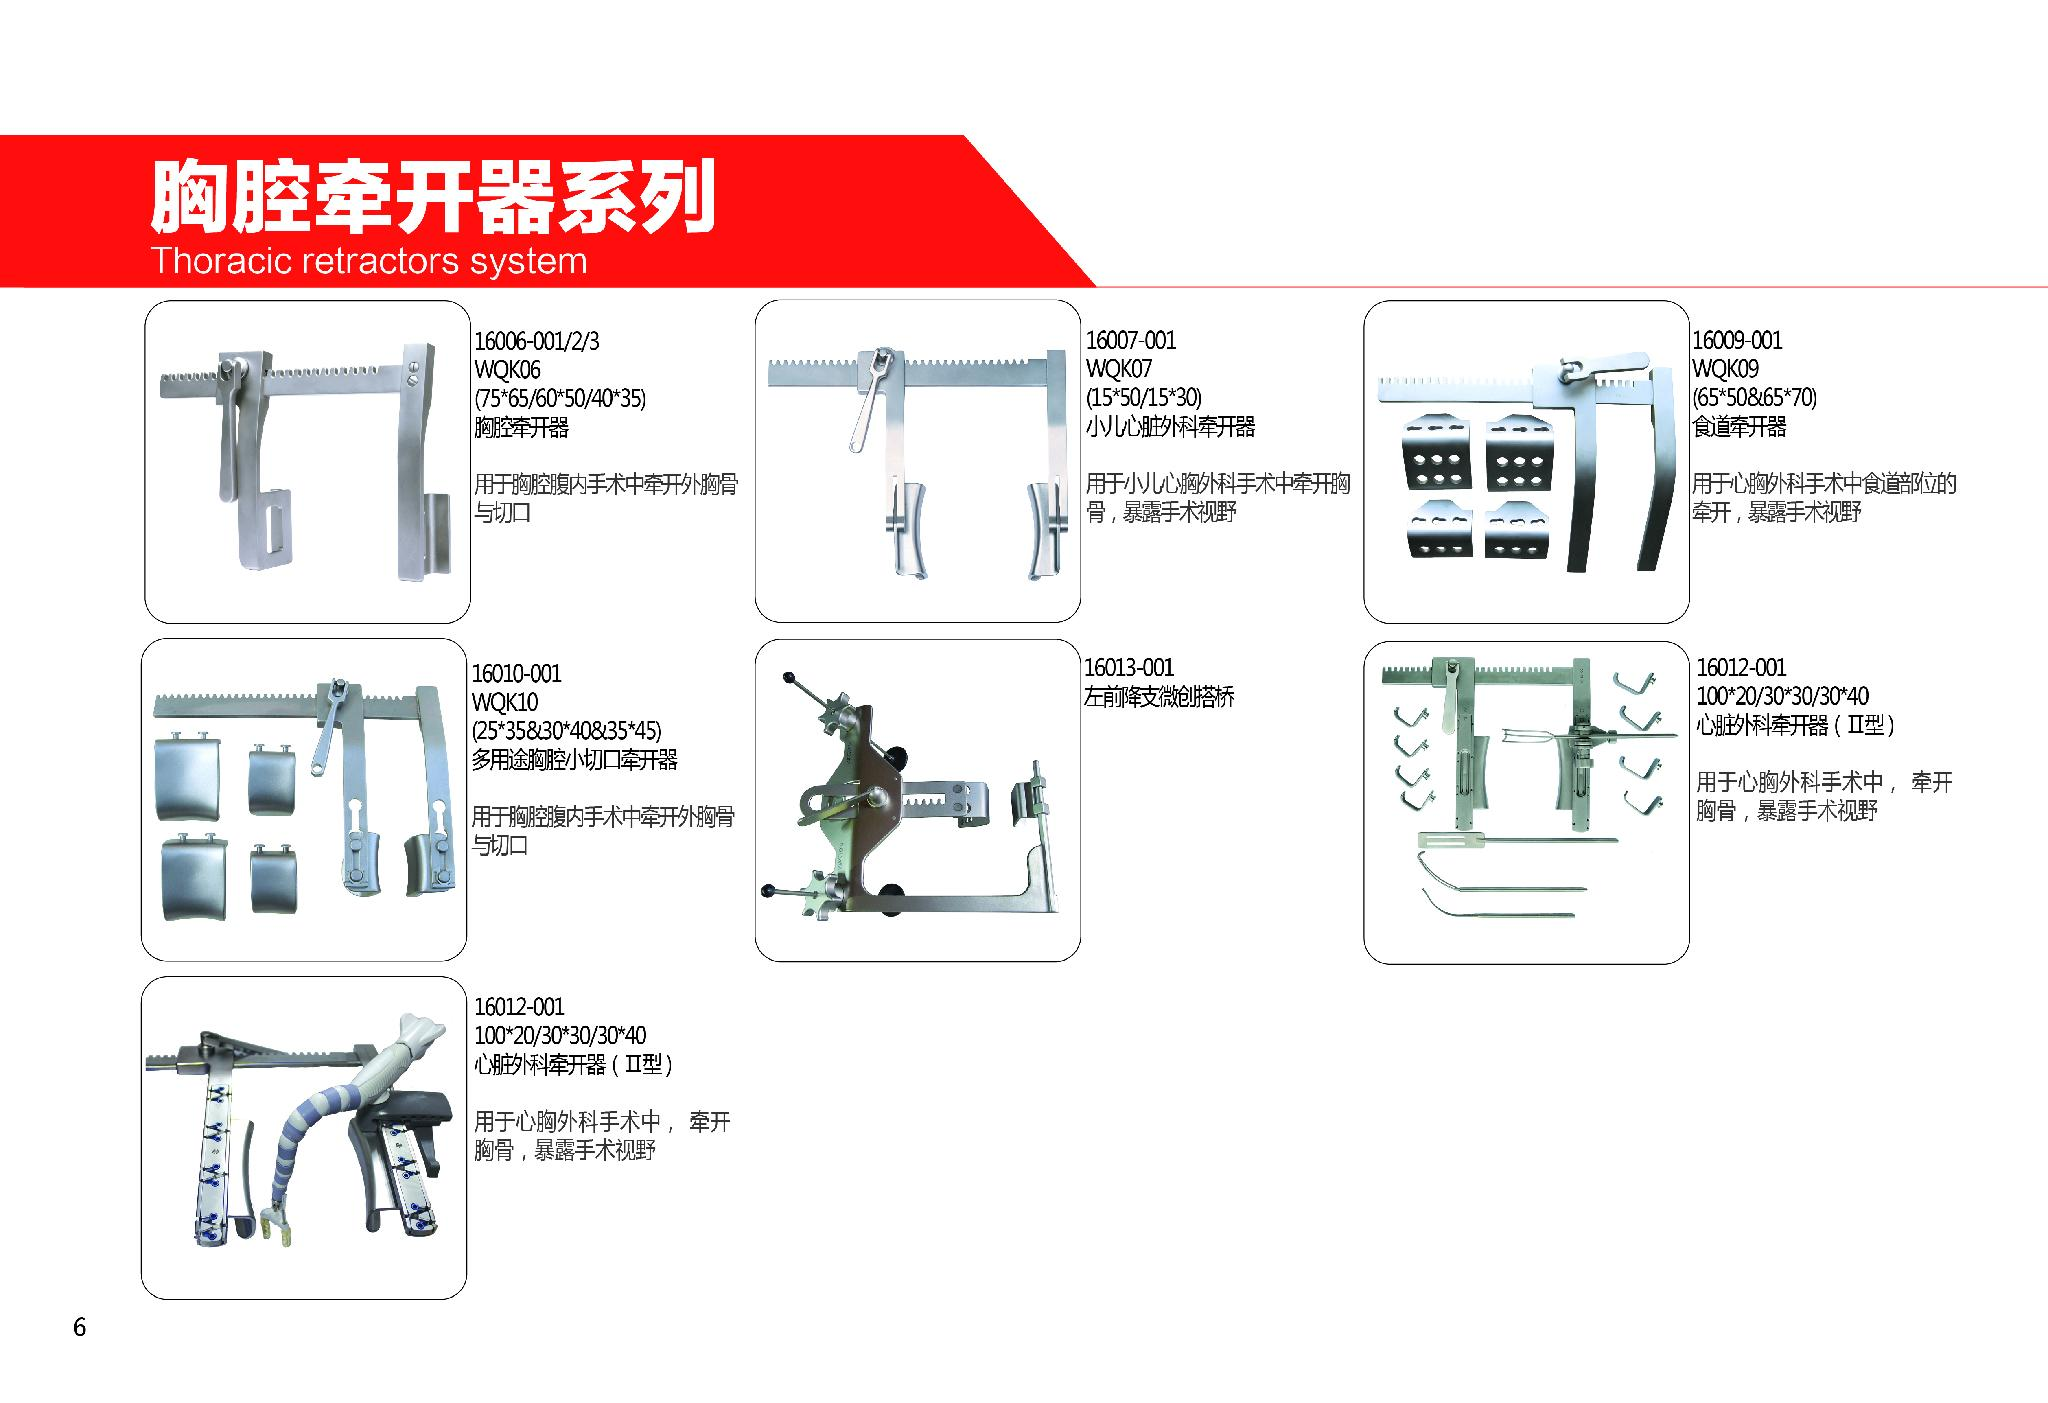 Miracle Series Sternal Closure System 2